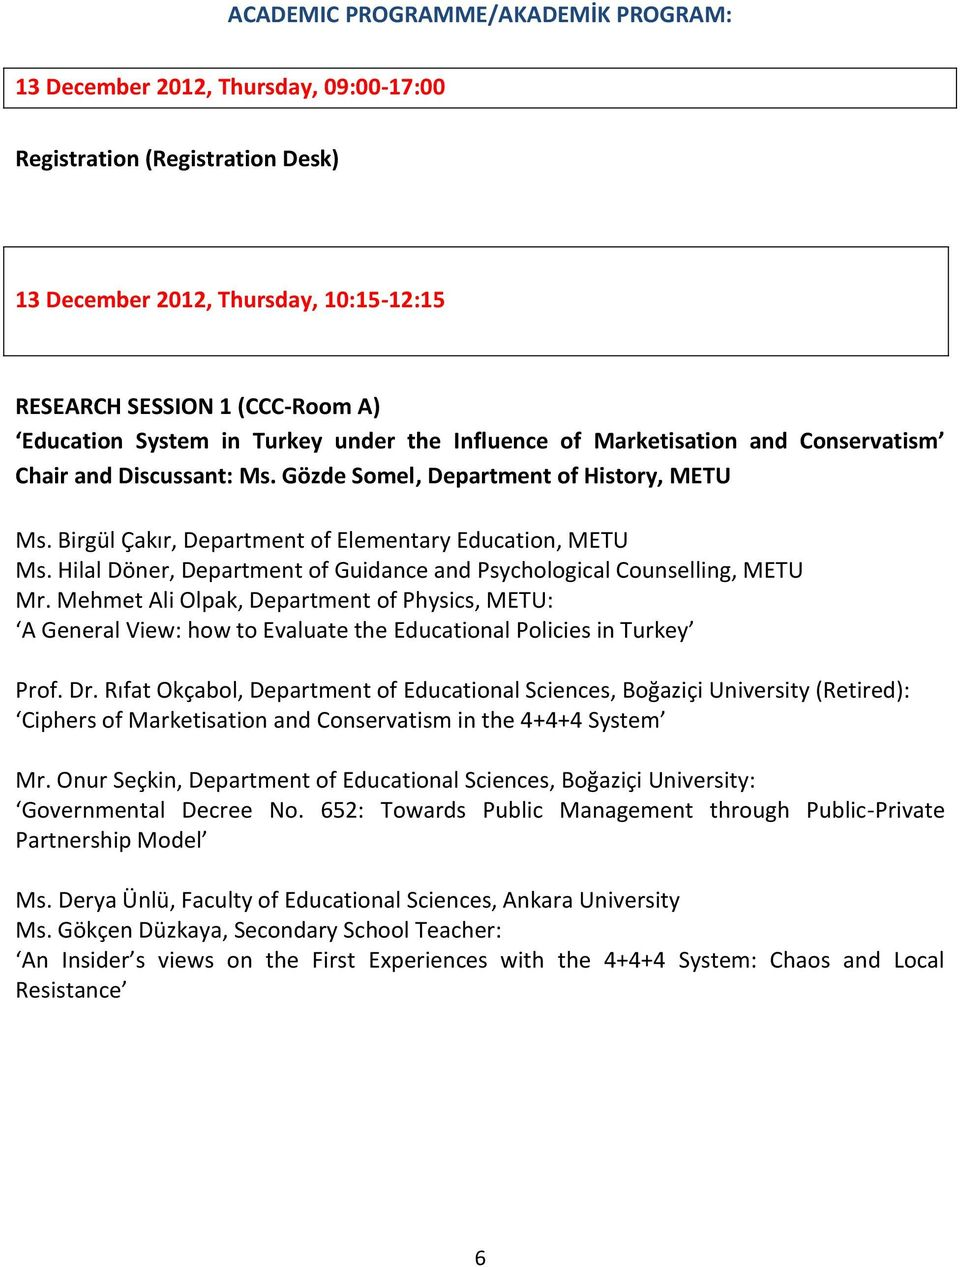 Hilal Döner, Department of Guidance and Psychological Counselling, METU Mr. Mehmet Ali Olpak, Department of Physics, METU: A General View: how to Evaluate the Educational Policies in Turkey Prof. Dr.